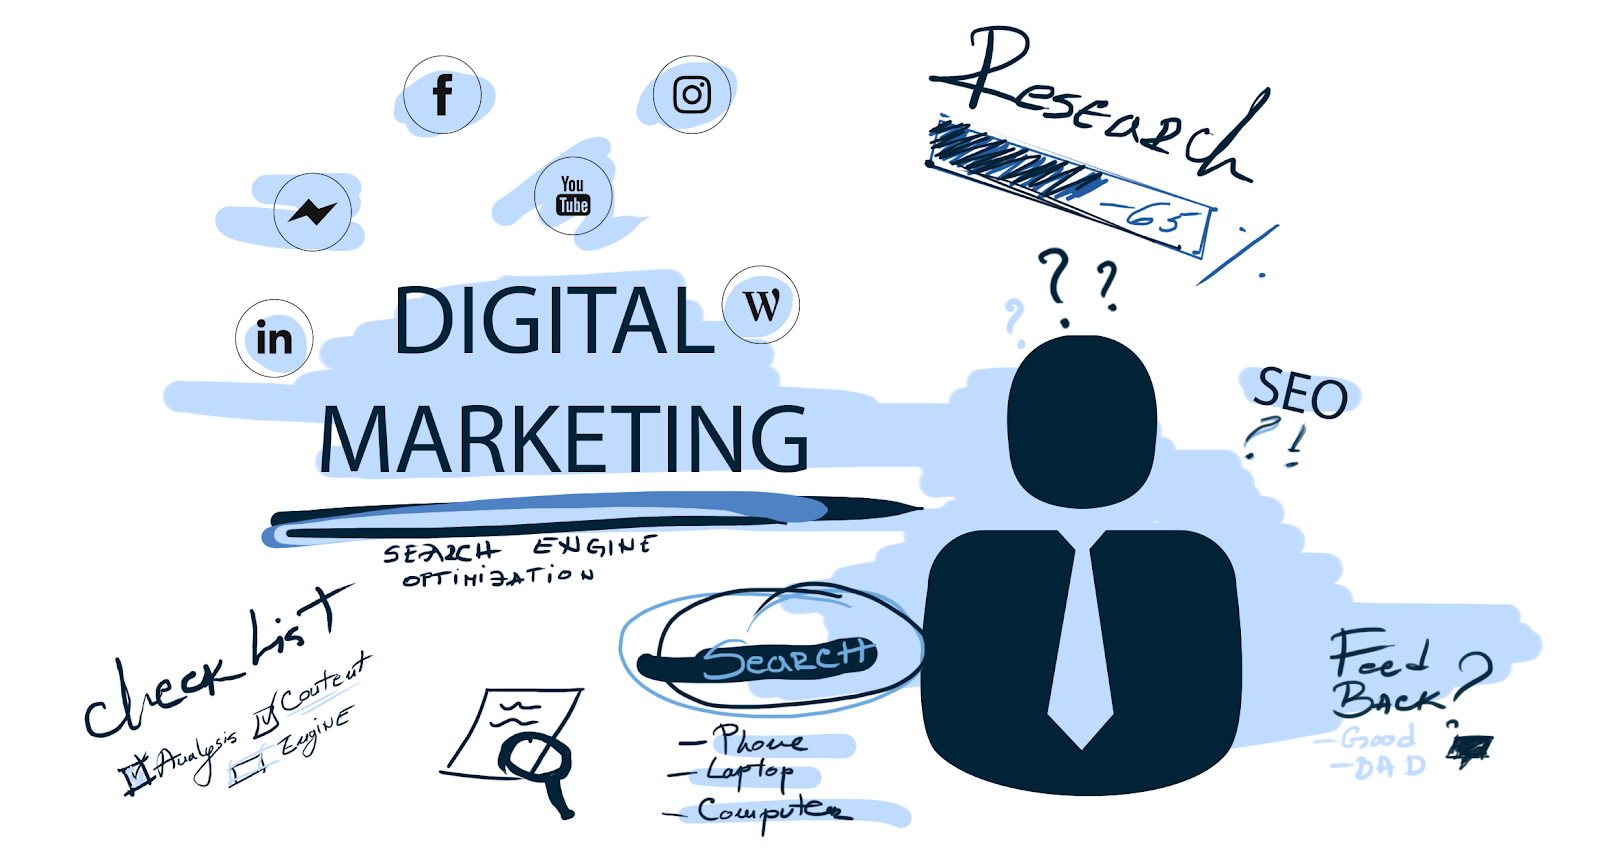 illustration of a person confused with digital marketing